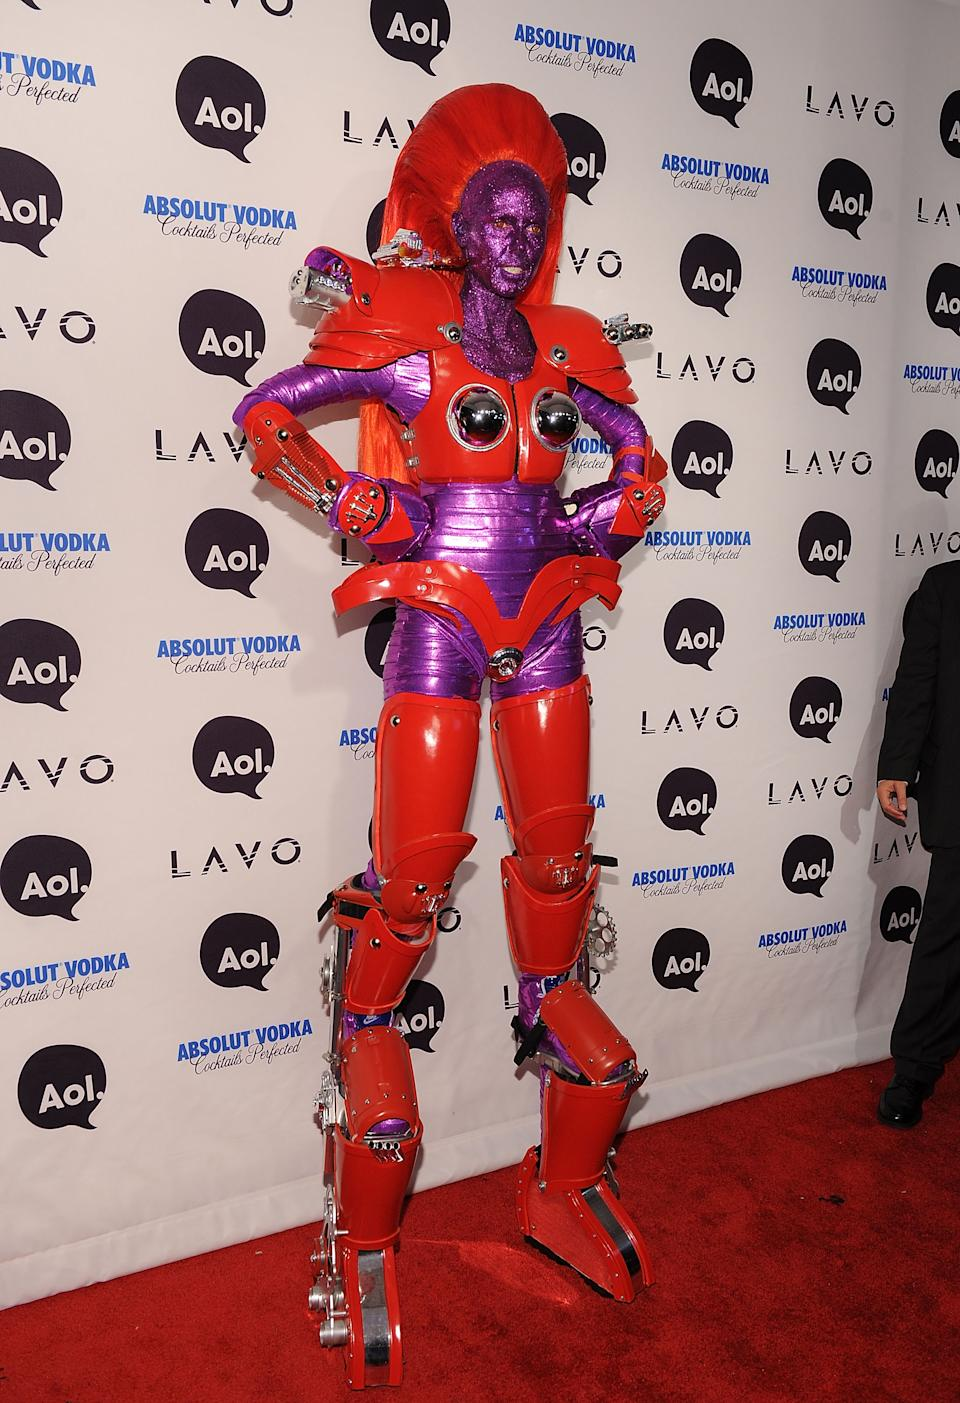 NEW YORK - OCTOBER 31:  Heidi Klum attends Heidi Klum's 2010 Halloween Party at Lavo on October 31, 2010 in New York City.  (Photo by Bryan Bedder/Getty Images)